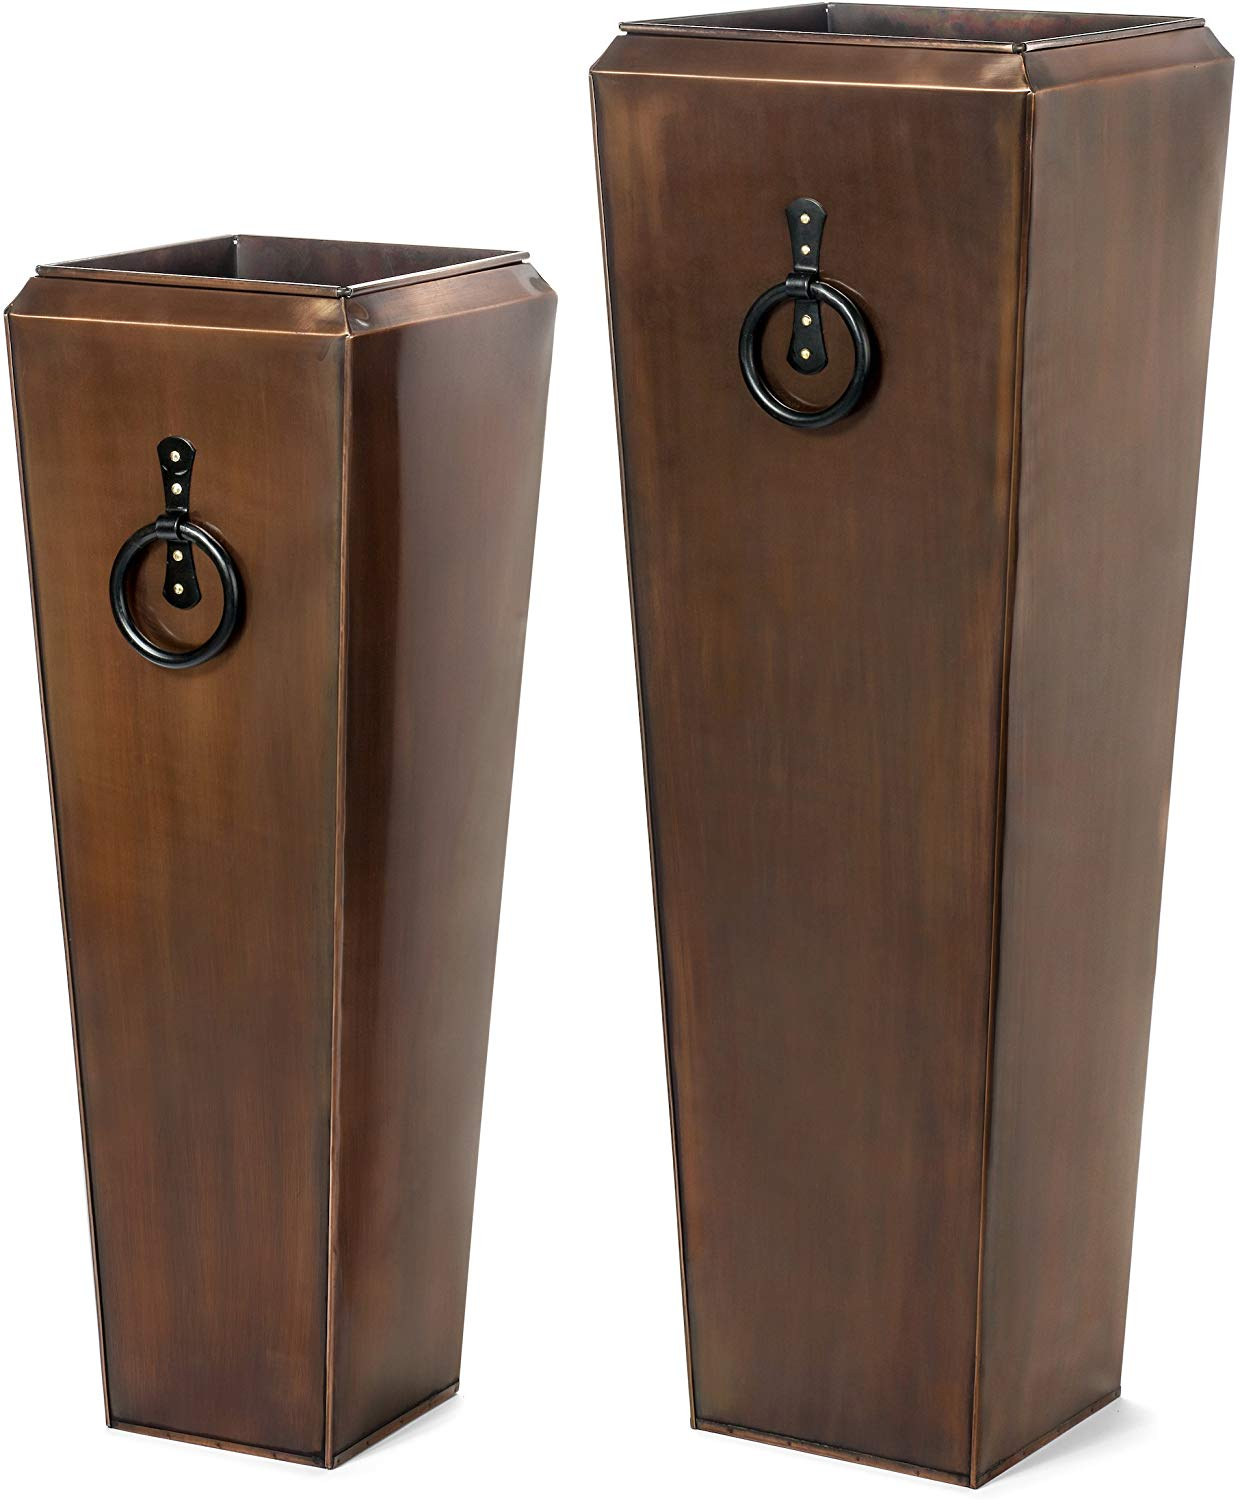 H Potter Tall Copper Planter, Set of 2